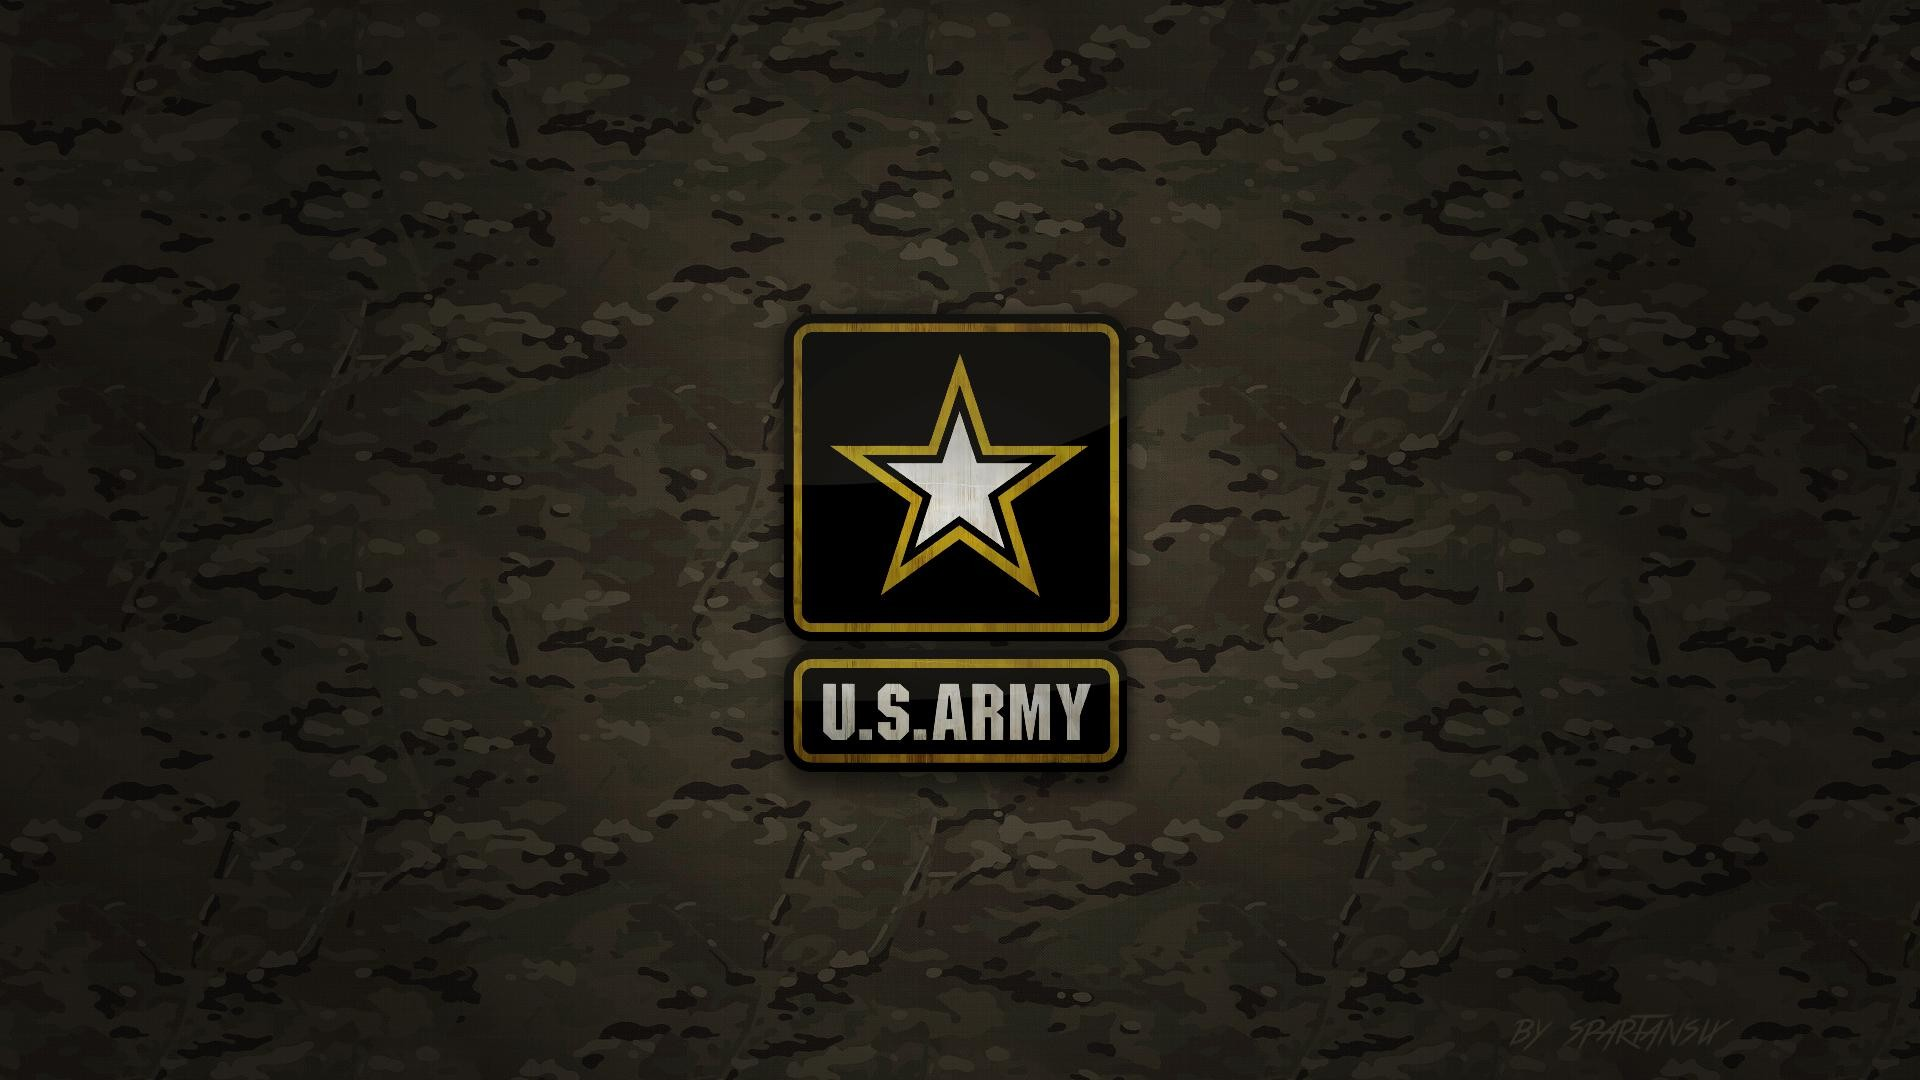 Awesome military wallpapers 75 images - Awesome army wallpapers ...